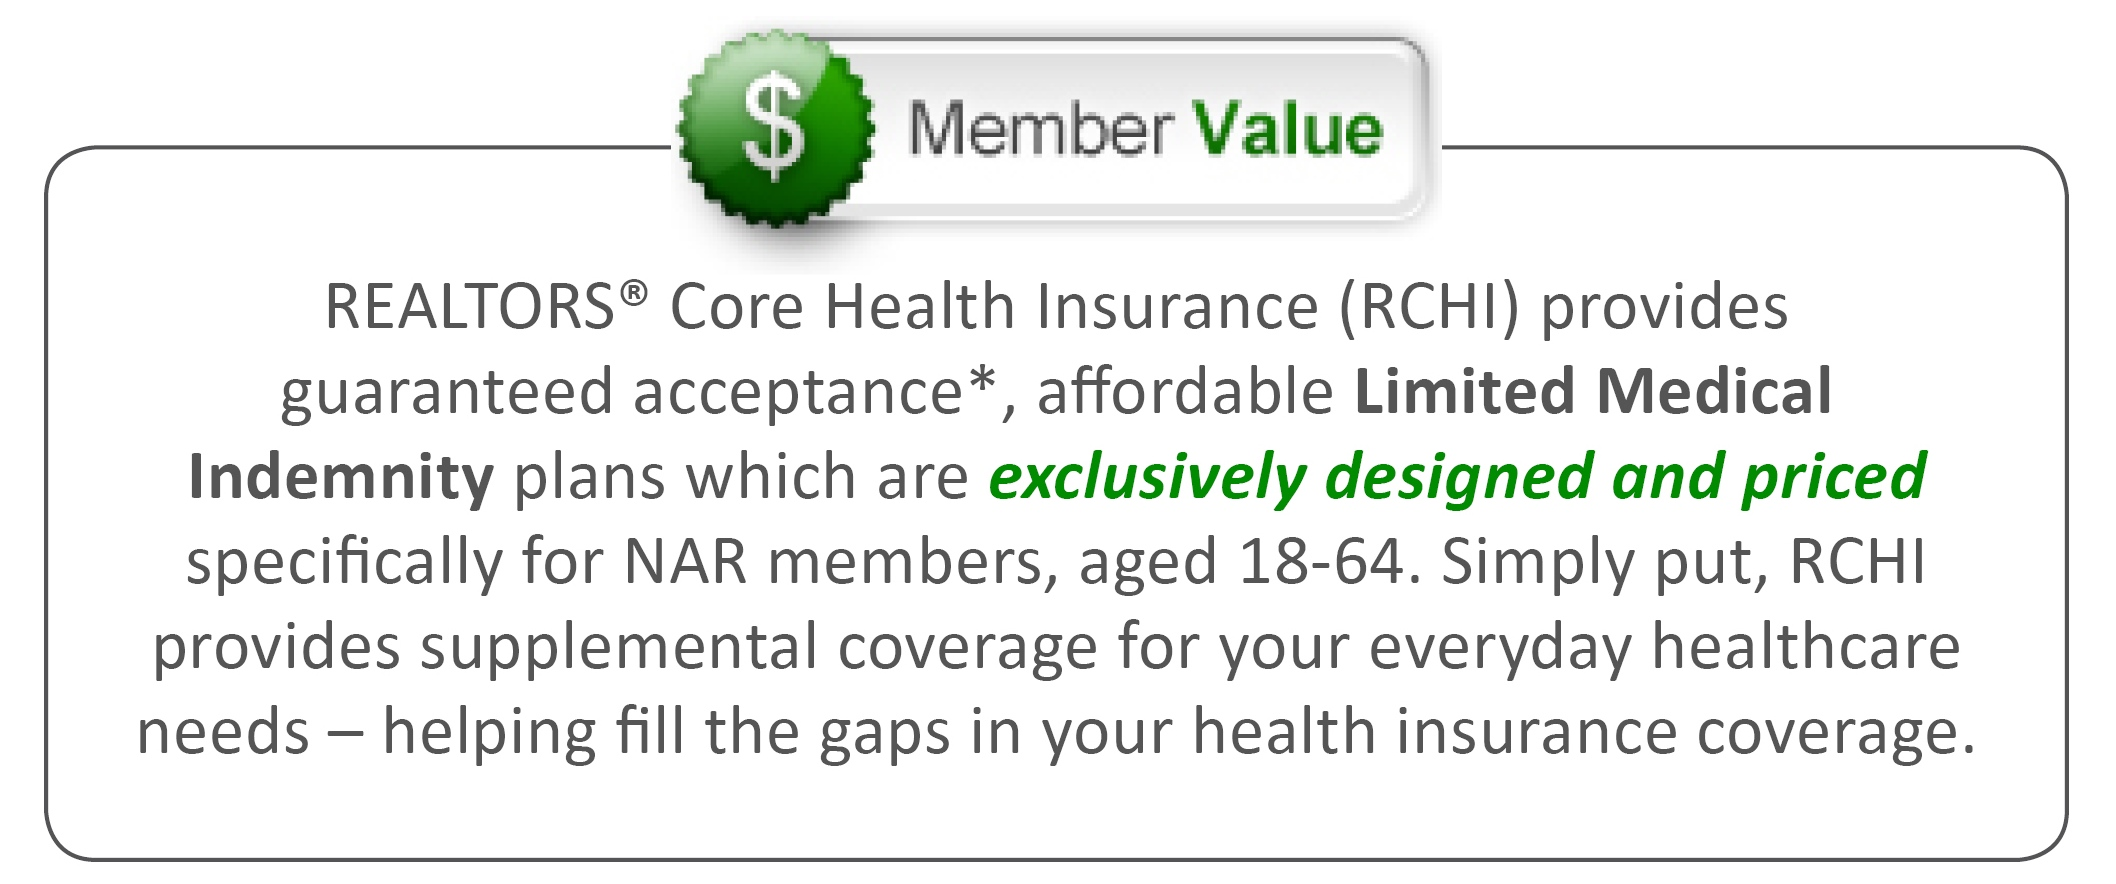 Member Value RCHI